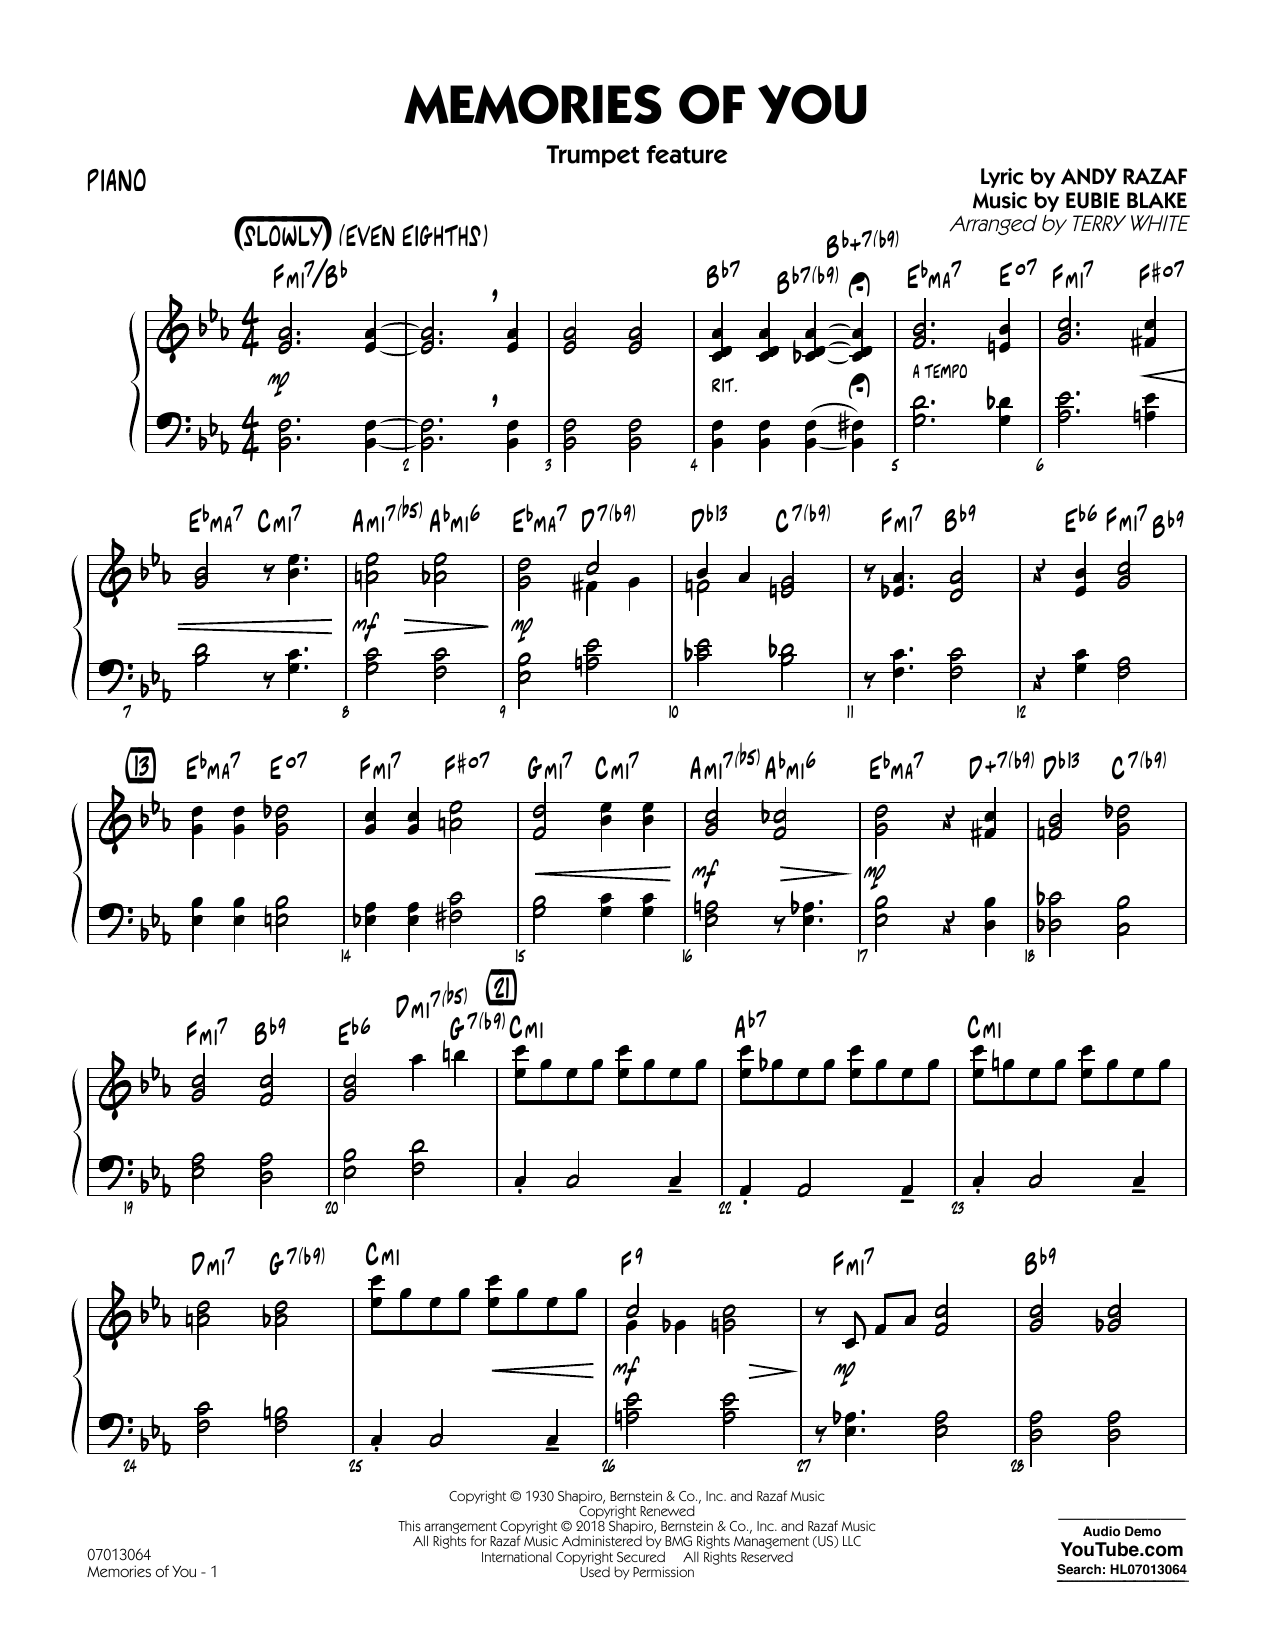 Terry White Memories of You (Trumpet Feature) - Piano sheet music notes printable PDF score